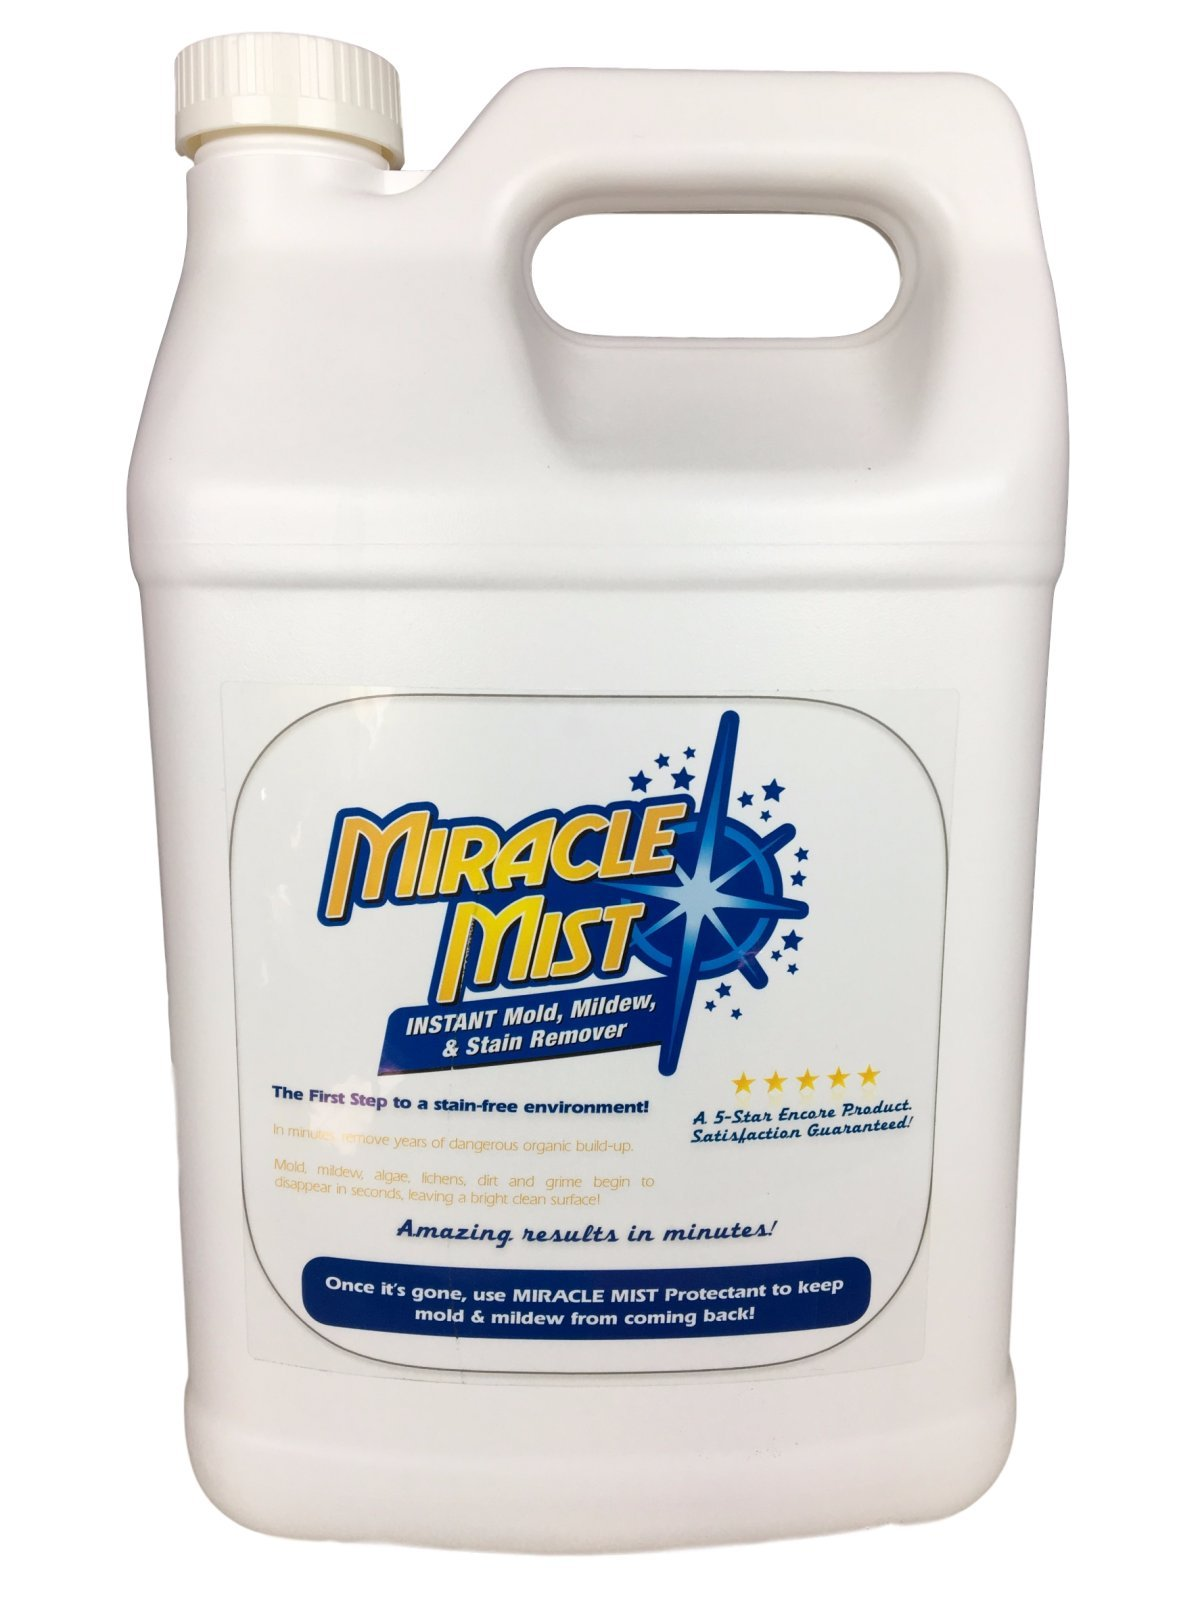 Miracle Mist Instant Mold & Mildew Stain Remover for Wood, Decks, Showers, Tile Hard Surfaces - 1 GALLON